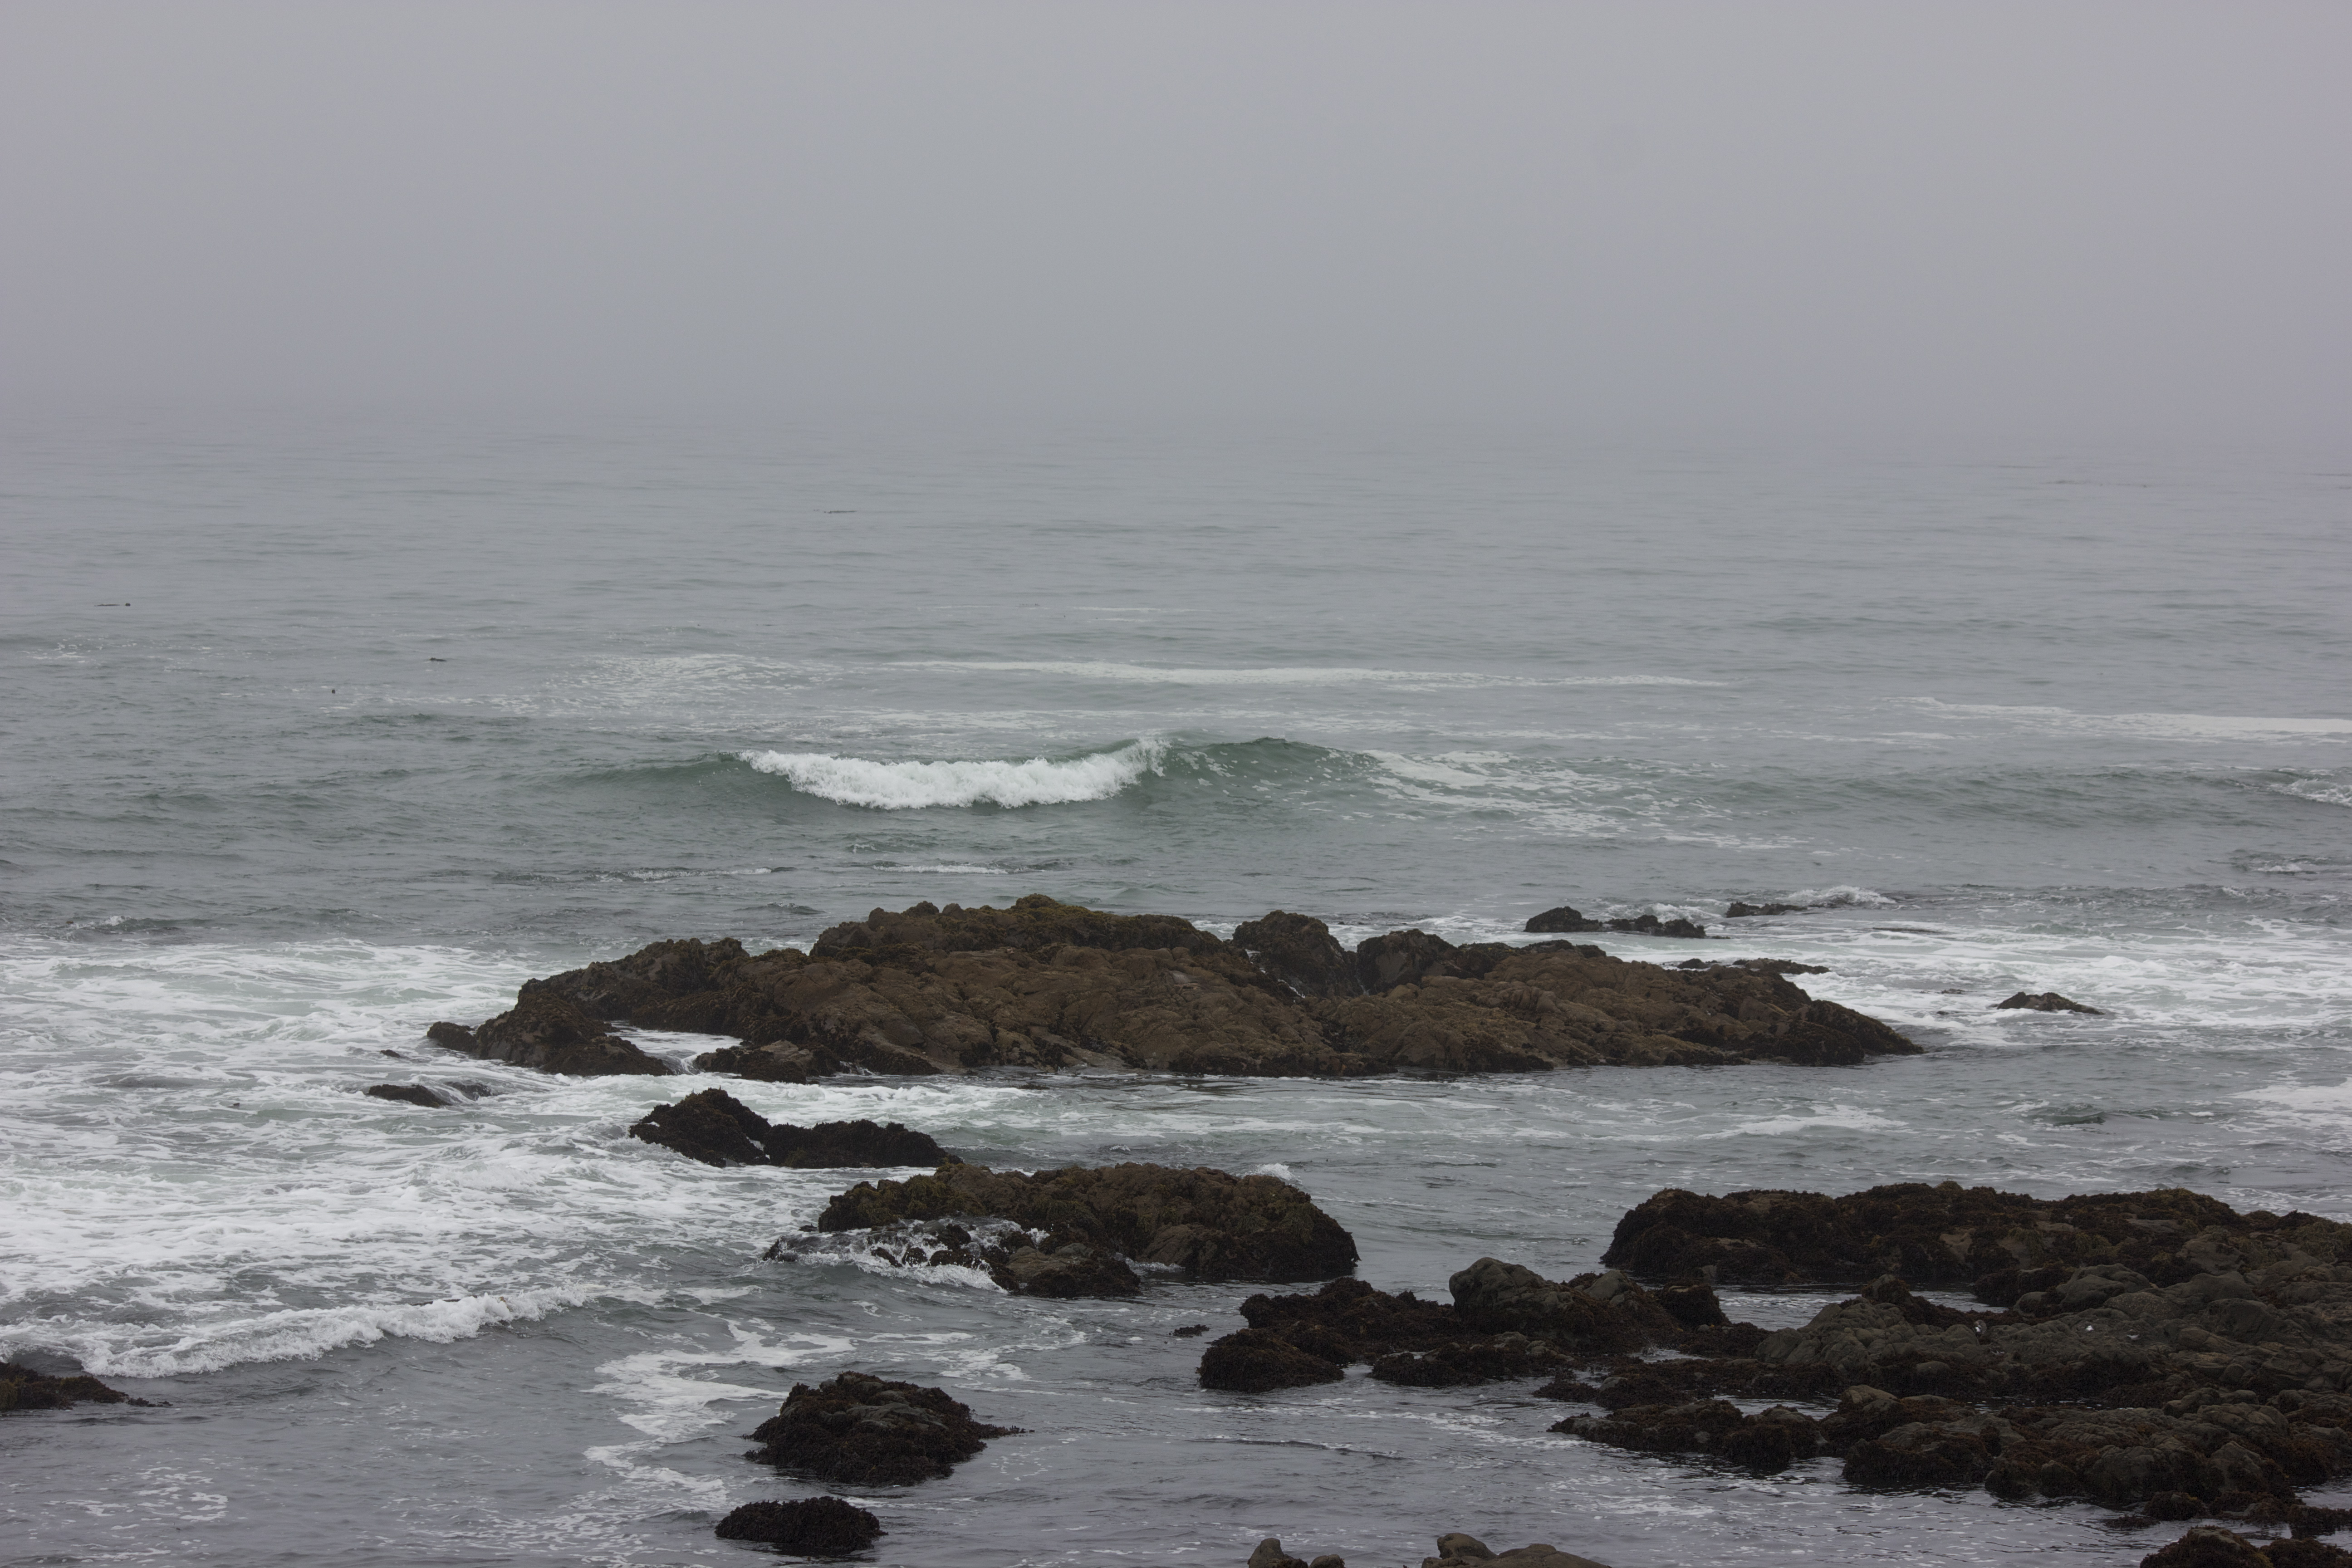 A small wave crests near the rocky shore, against a foggy blurred horizon.